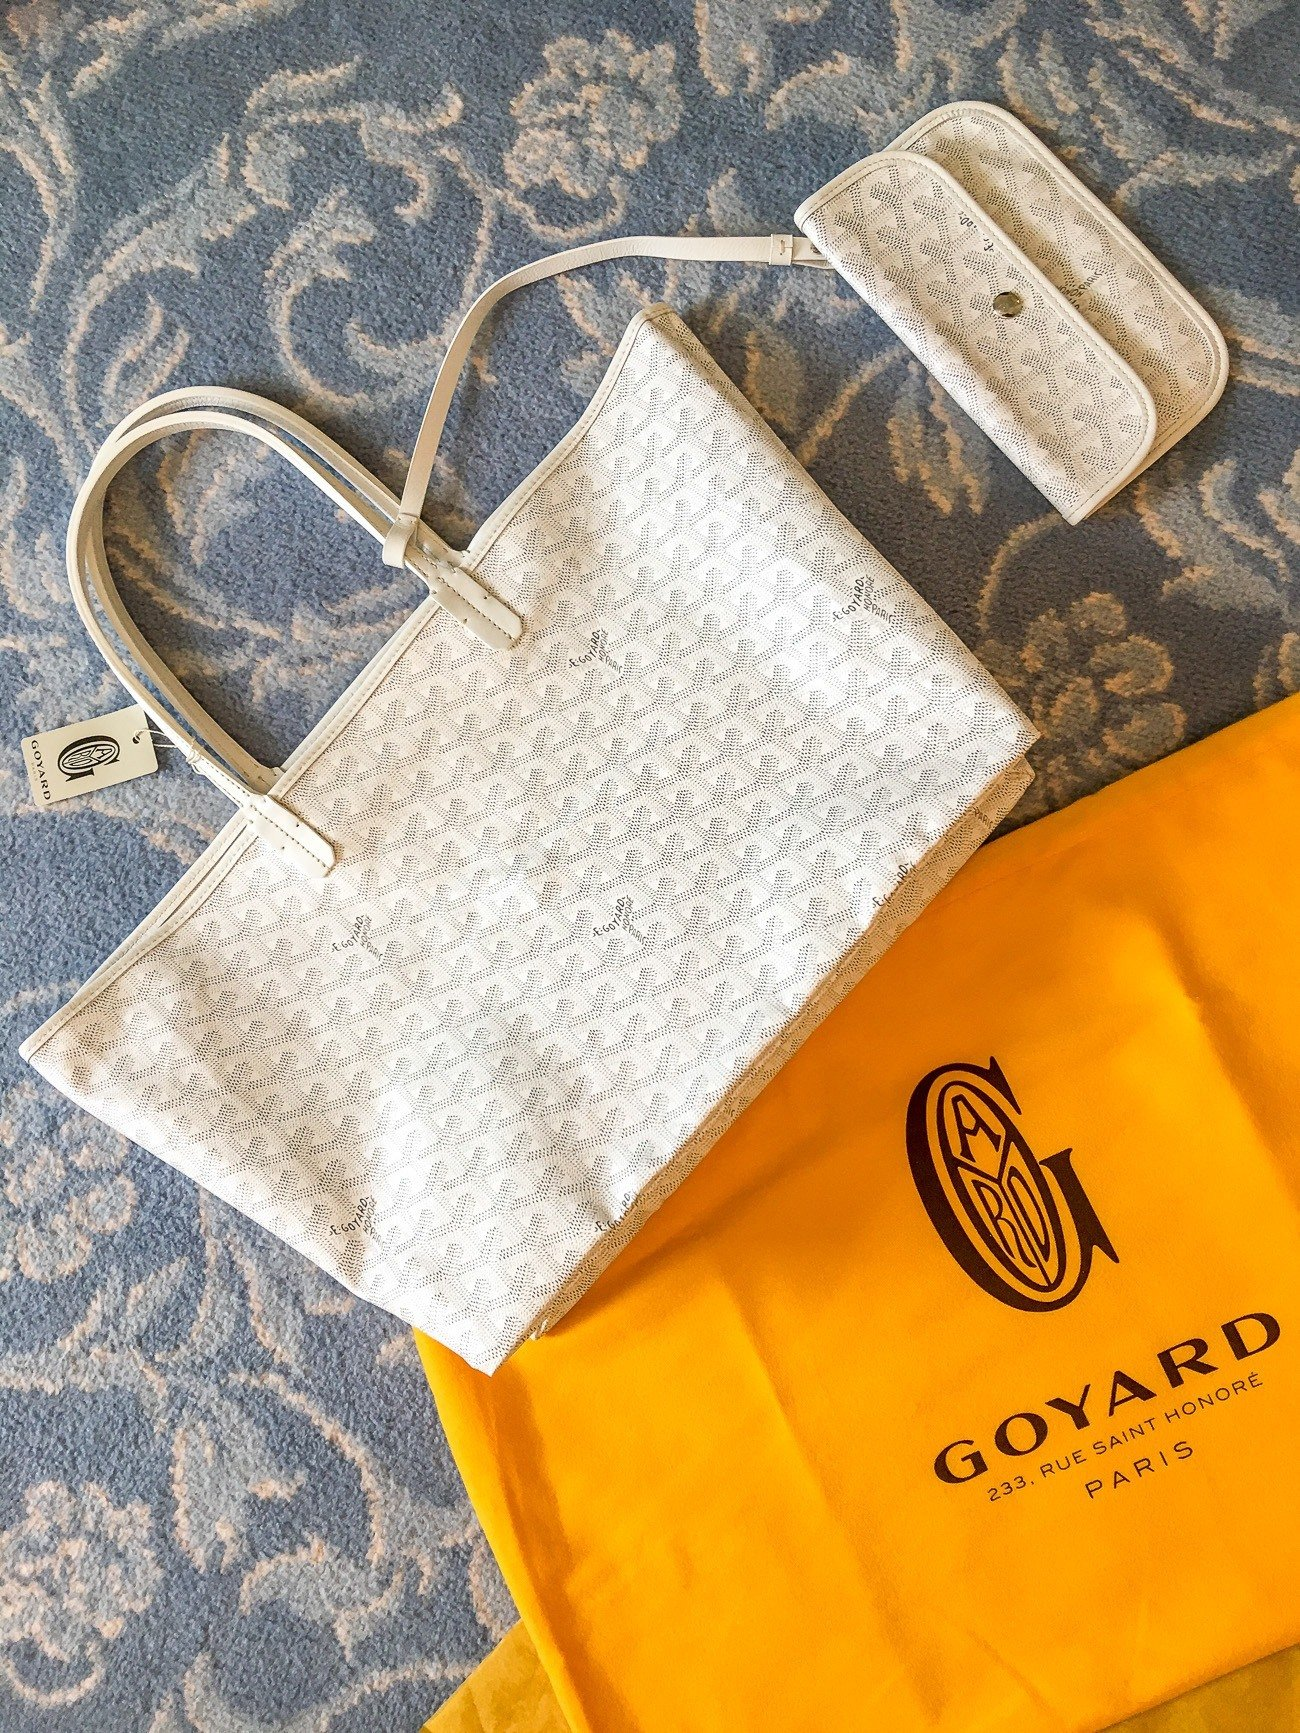 A white Goyard Saint Louis GM handbag purchased in Paris.